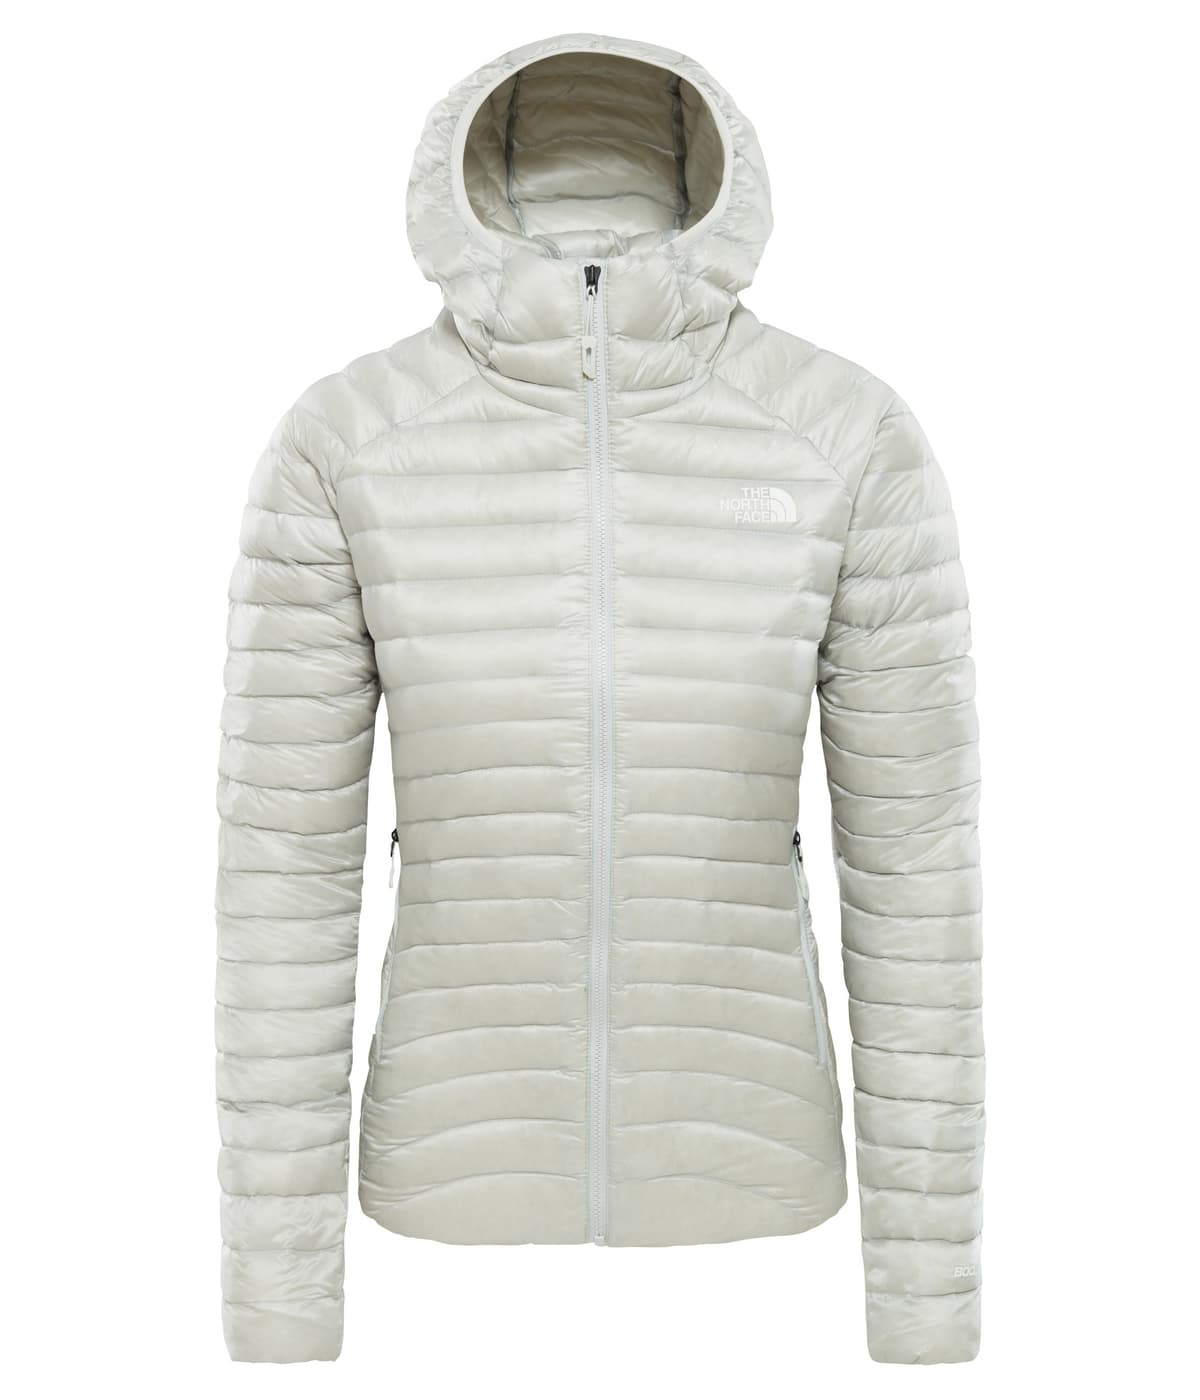 The North Face Impendor Piumino da donna ... 960be4442f2d